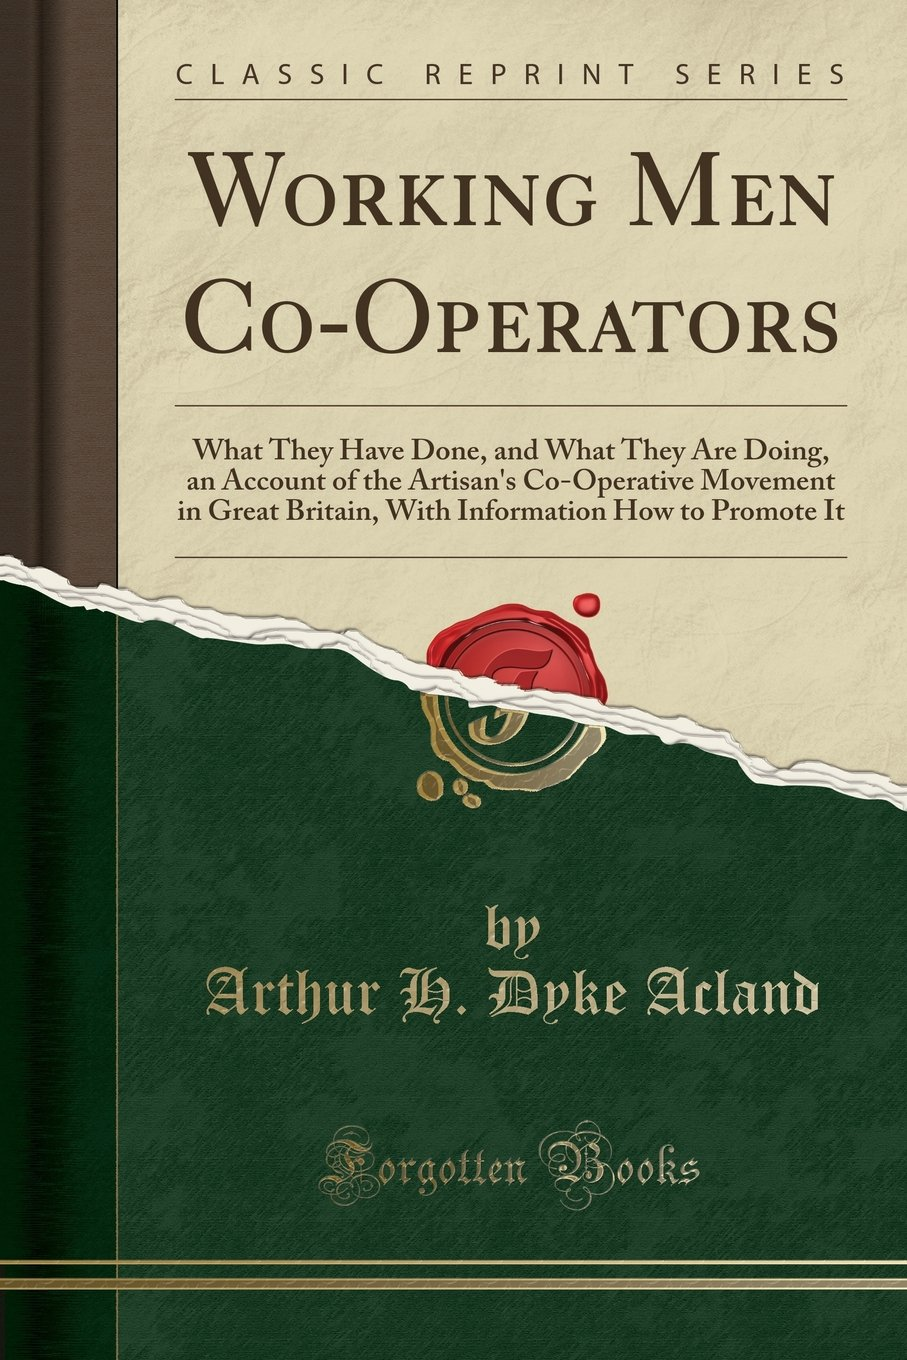 Read Online Working Men Co-Operators: What They Have Done, and What They Are Doing, an Account of the Artisan's Co-Operative Movement in Great Britain, With Information How to Promote It (Classic Reprint) ebook